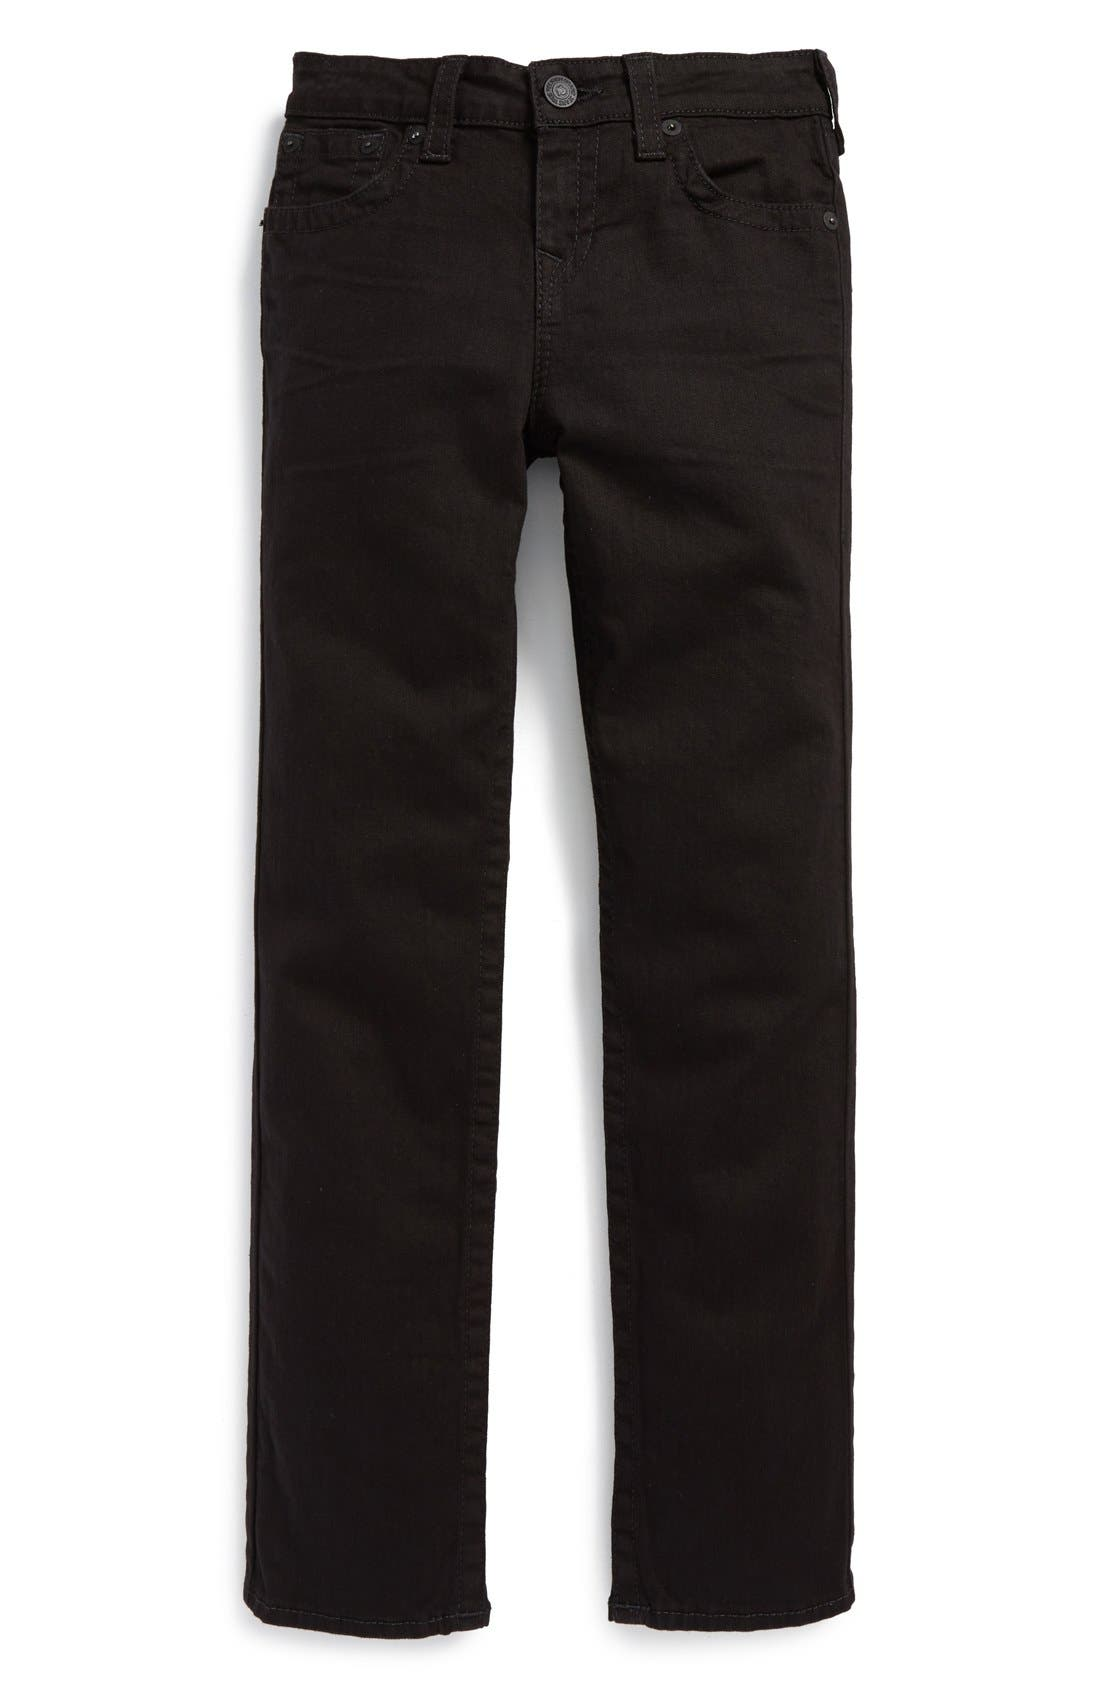 Main Image - True Religion Brand Jeans 'Geno' Relaxed Slim Fit Jeans (Big Boys)